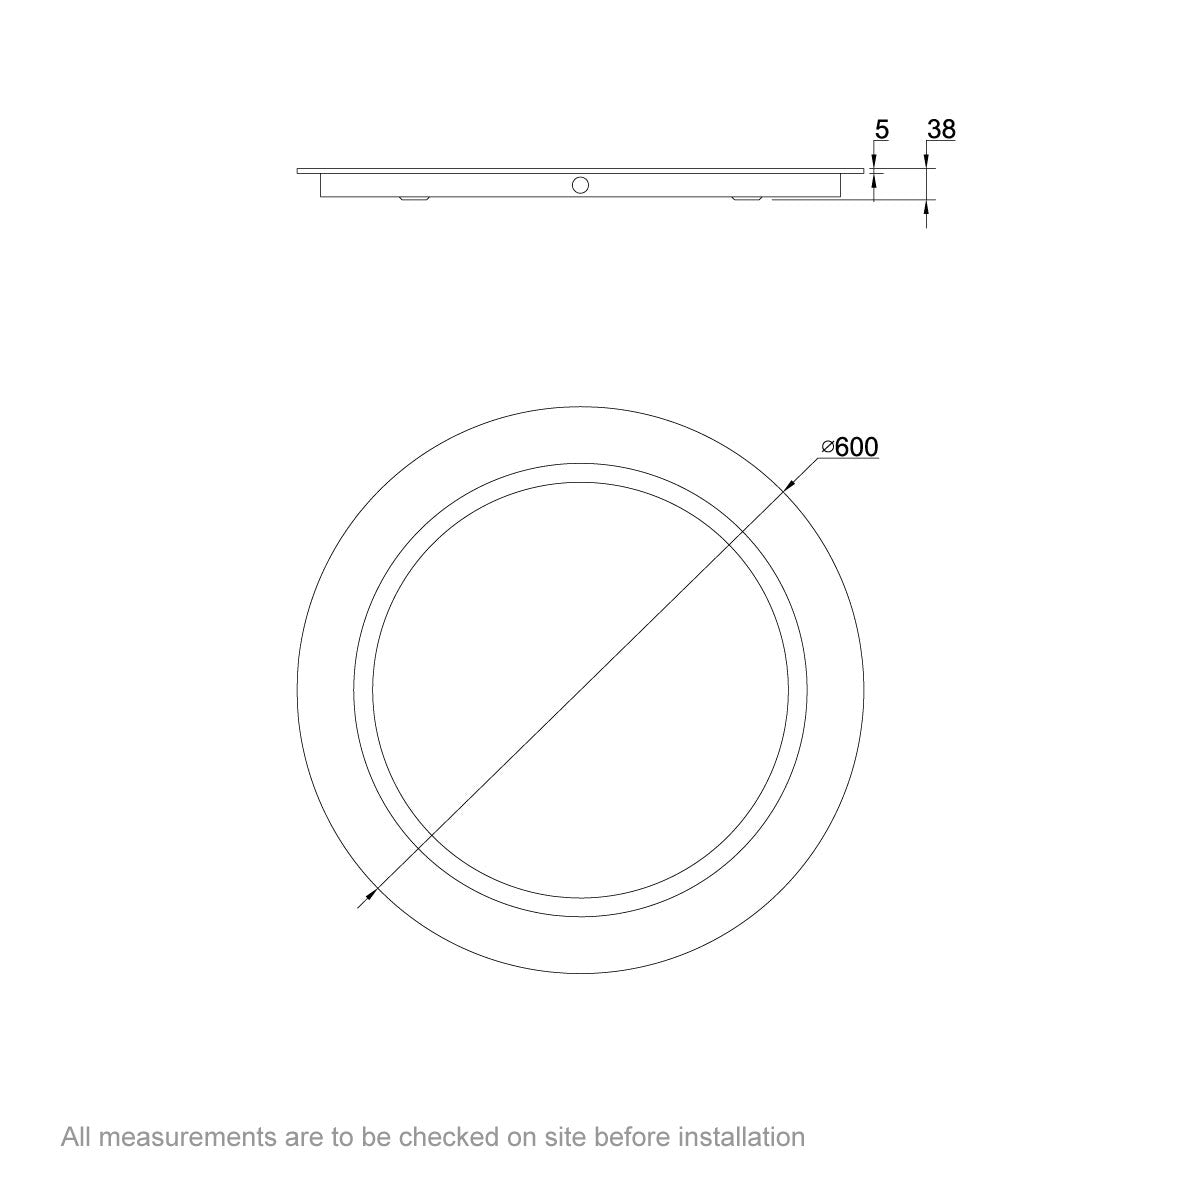 Dimensions for Mode Shine Round LED mirror